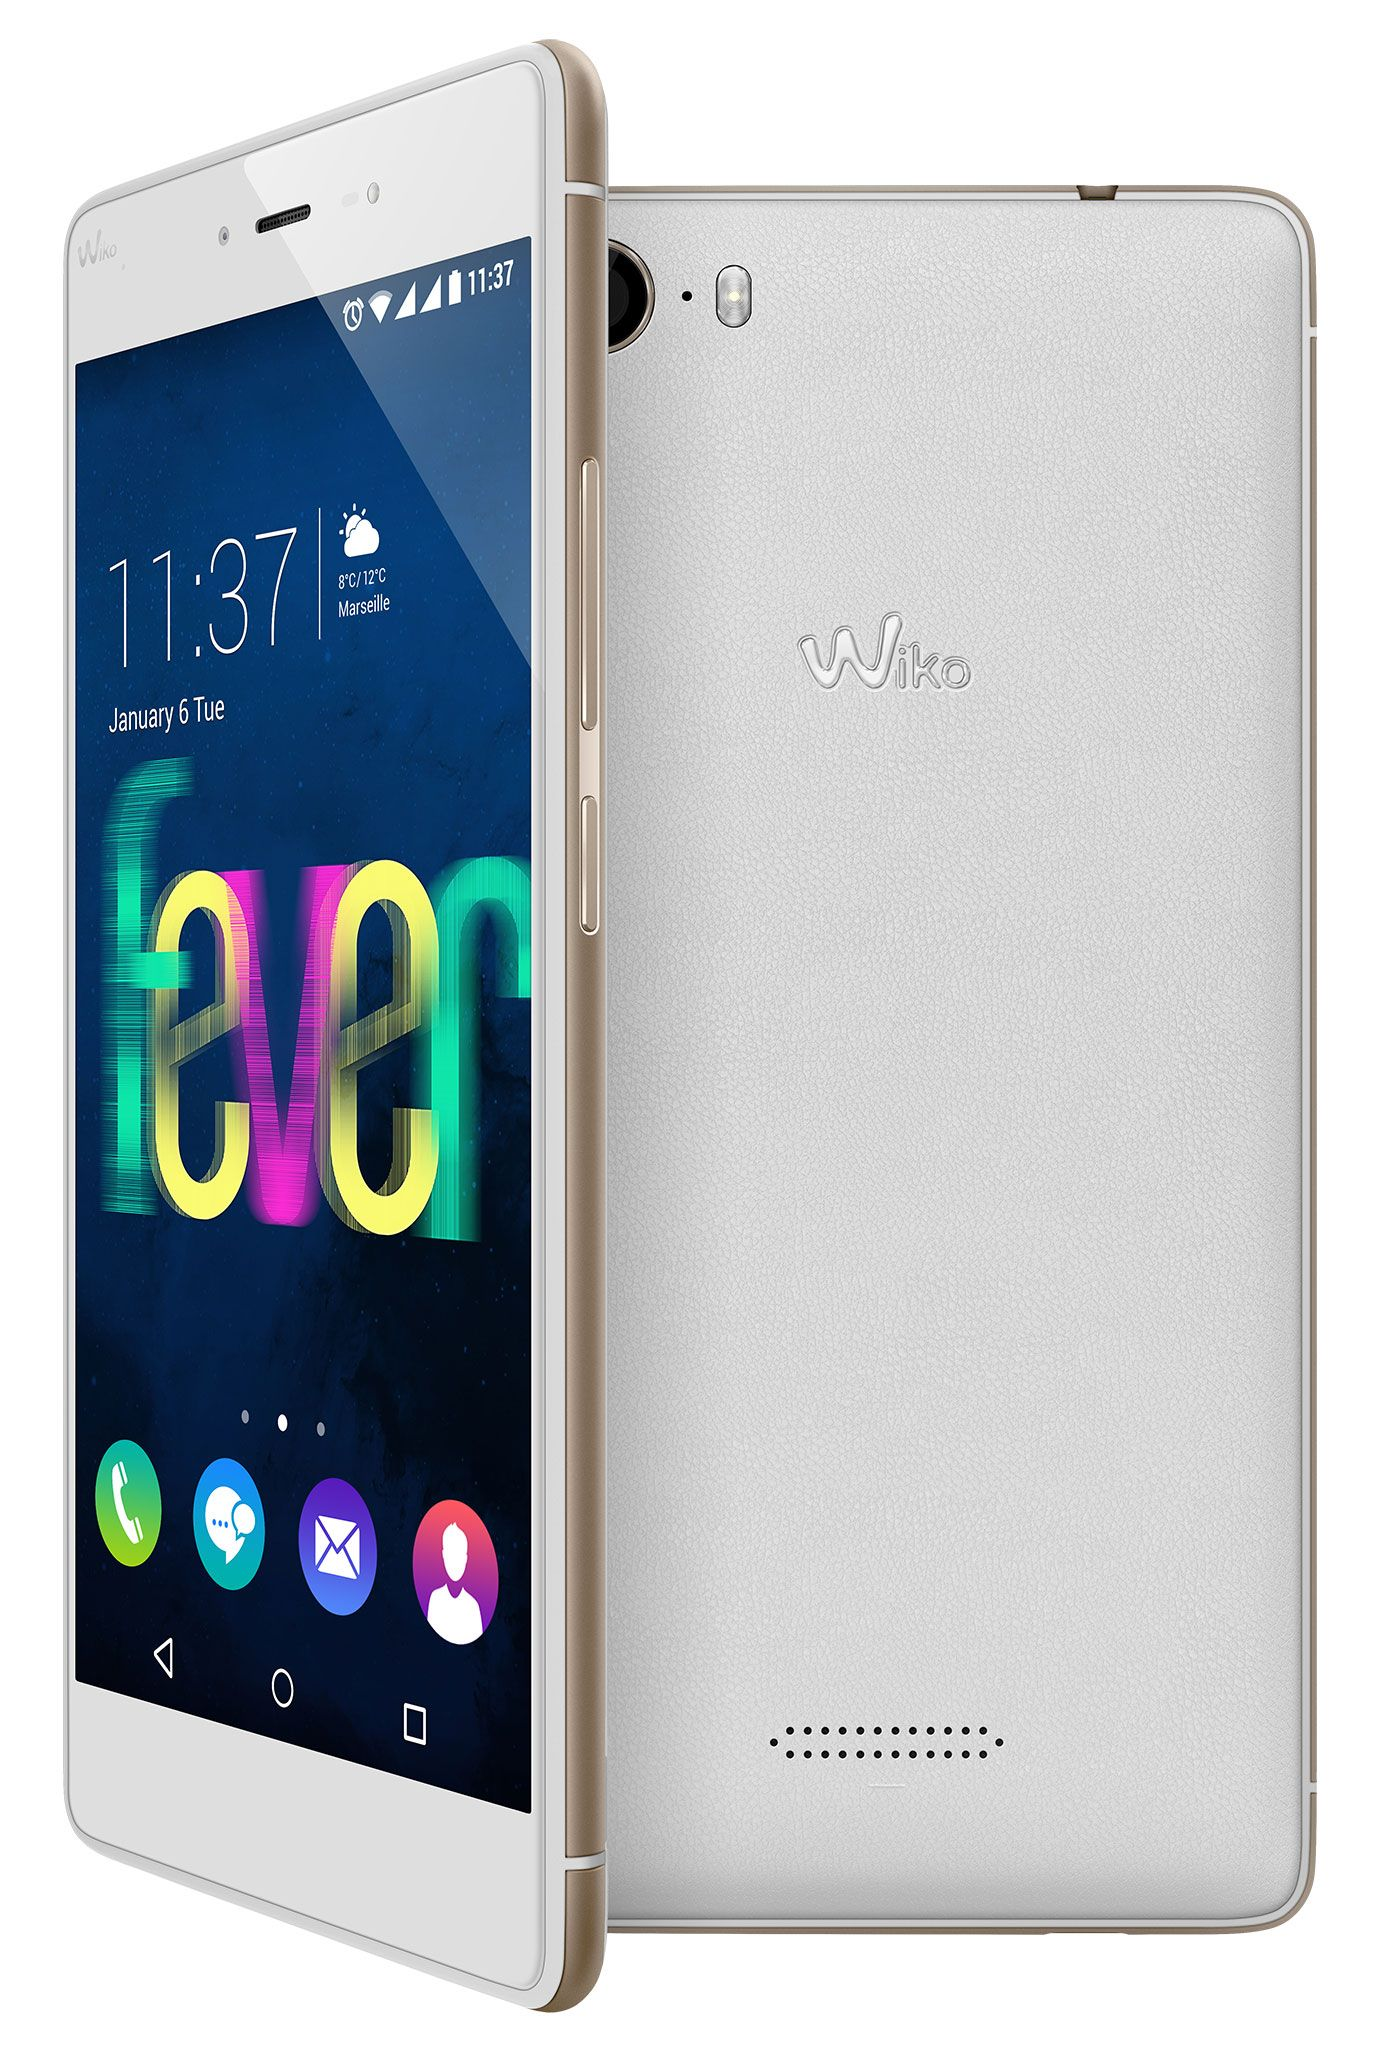 Marhaba Wiko Fever Stock Firmware Gsmmarhaba In 2018 Pinterest Lenovo A859 Smartphone With Quadcore And 1gb Ram